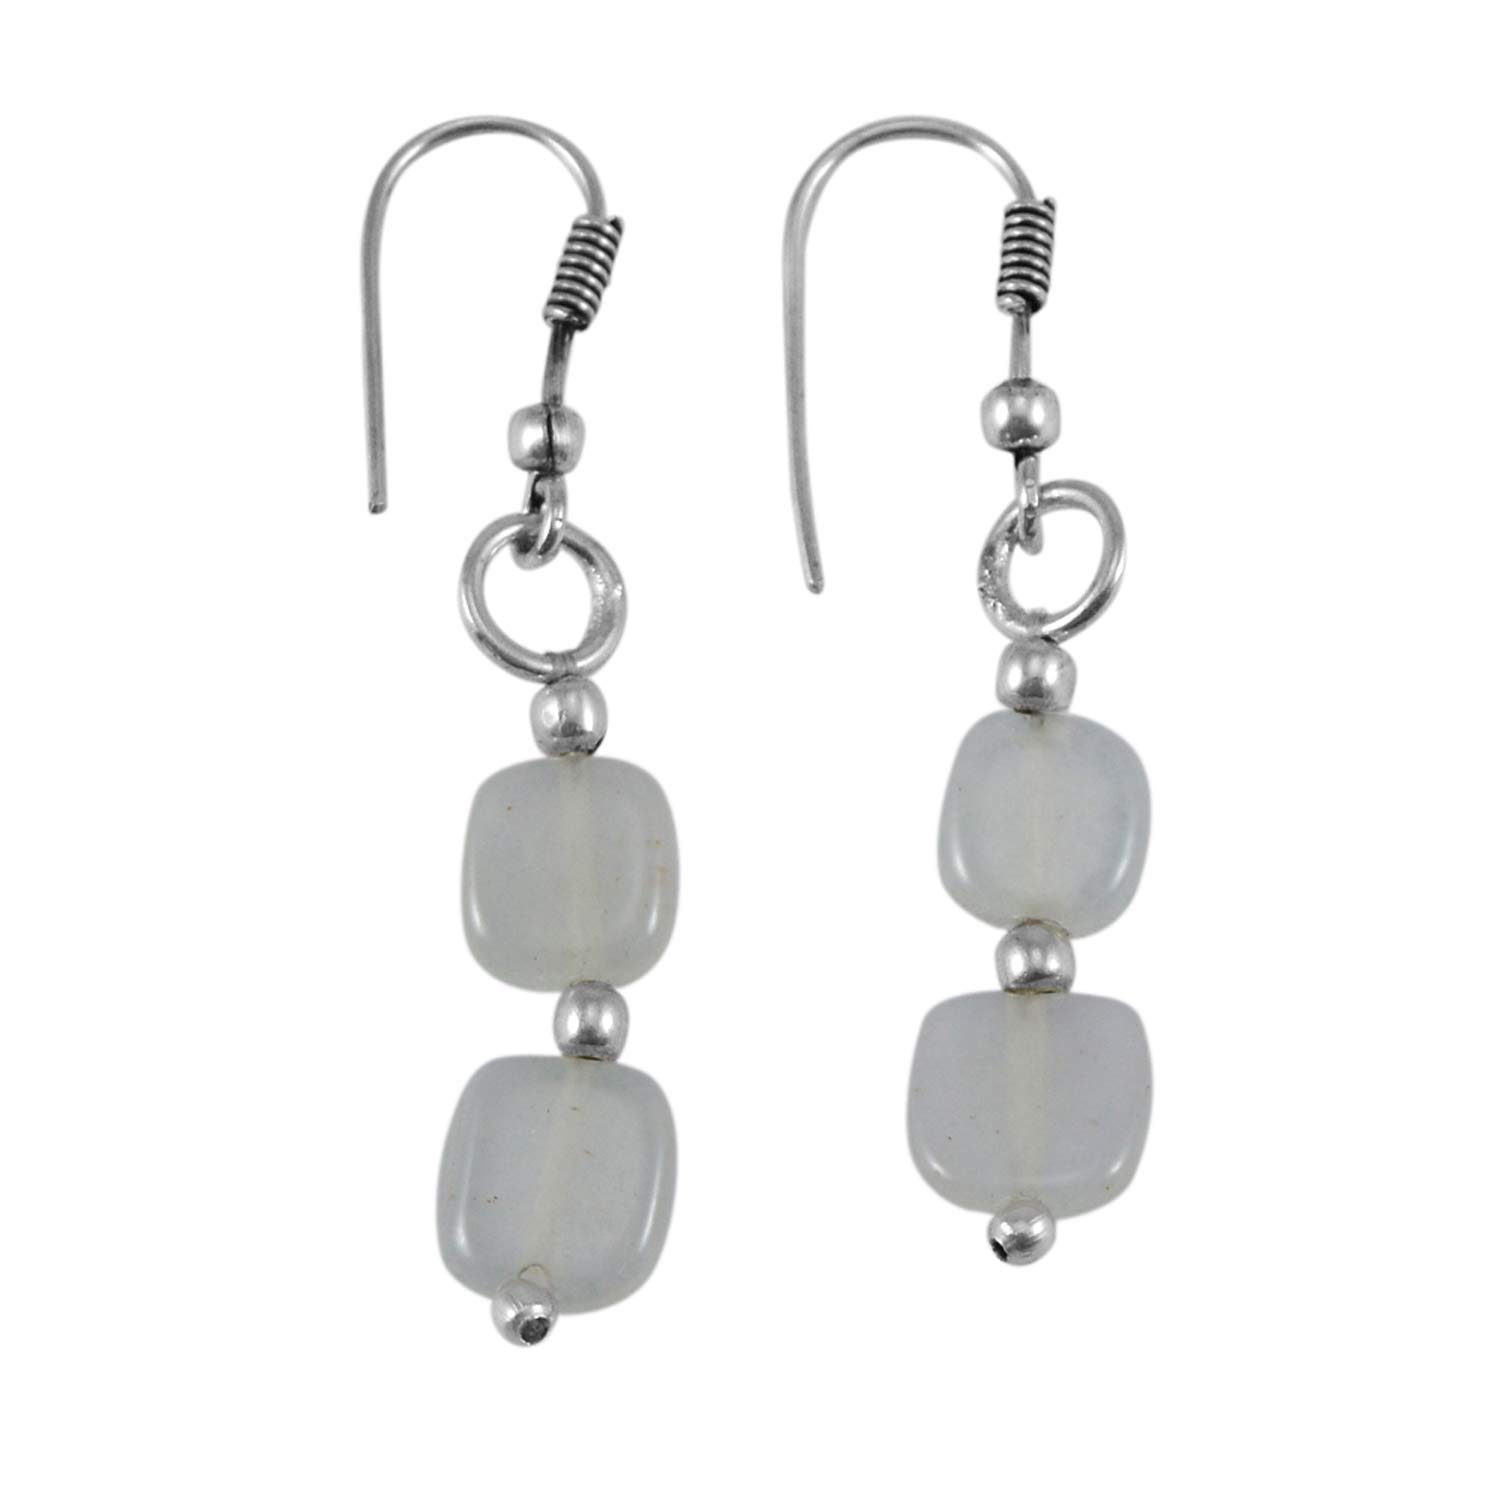 Saamarth Impex White Quartz 925 Silver Plated Dangle Earring PG-132518